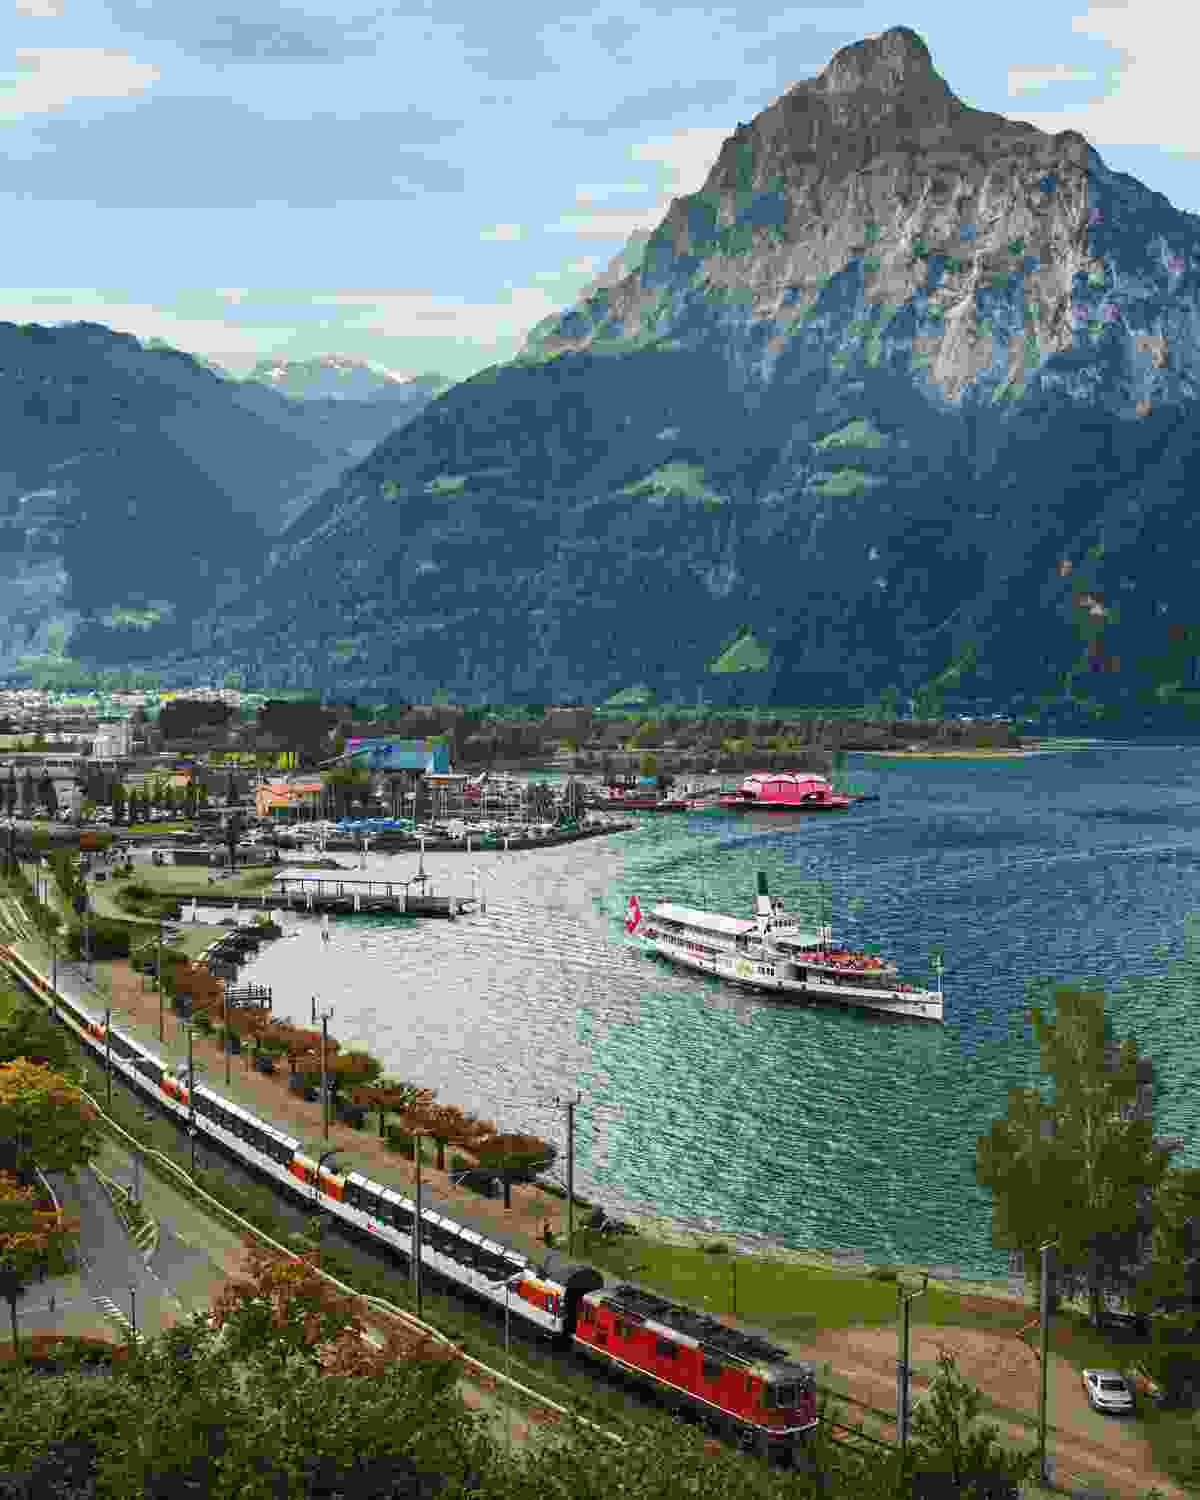 Gotthard Panorama Express at Flueelen, Central Switzerland (swiss-image.ch)